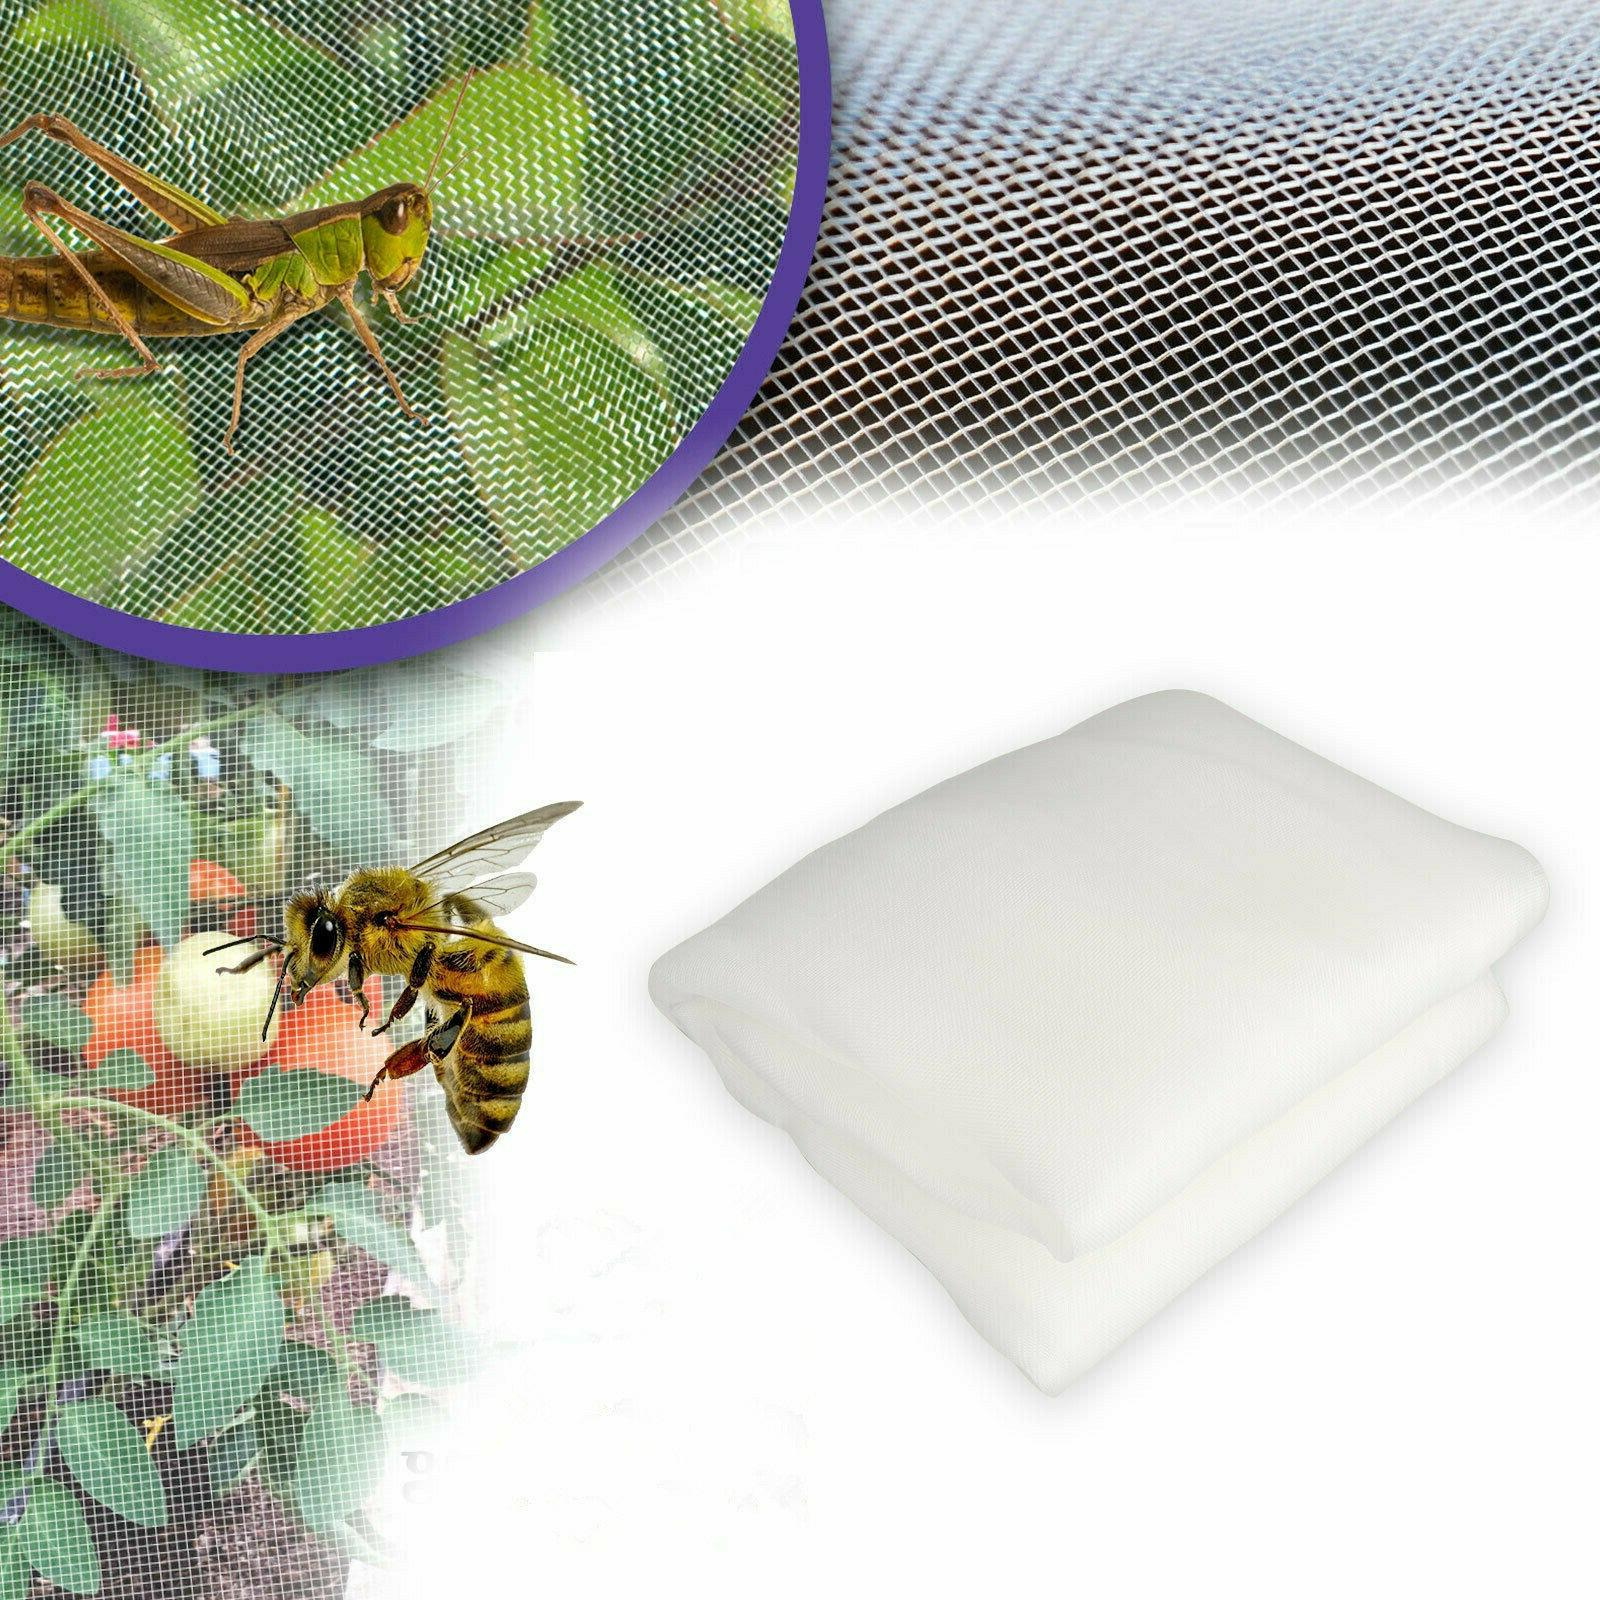 Mosquito Garden Bug Insect Netting Insect Barrier Bird Net P